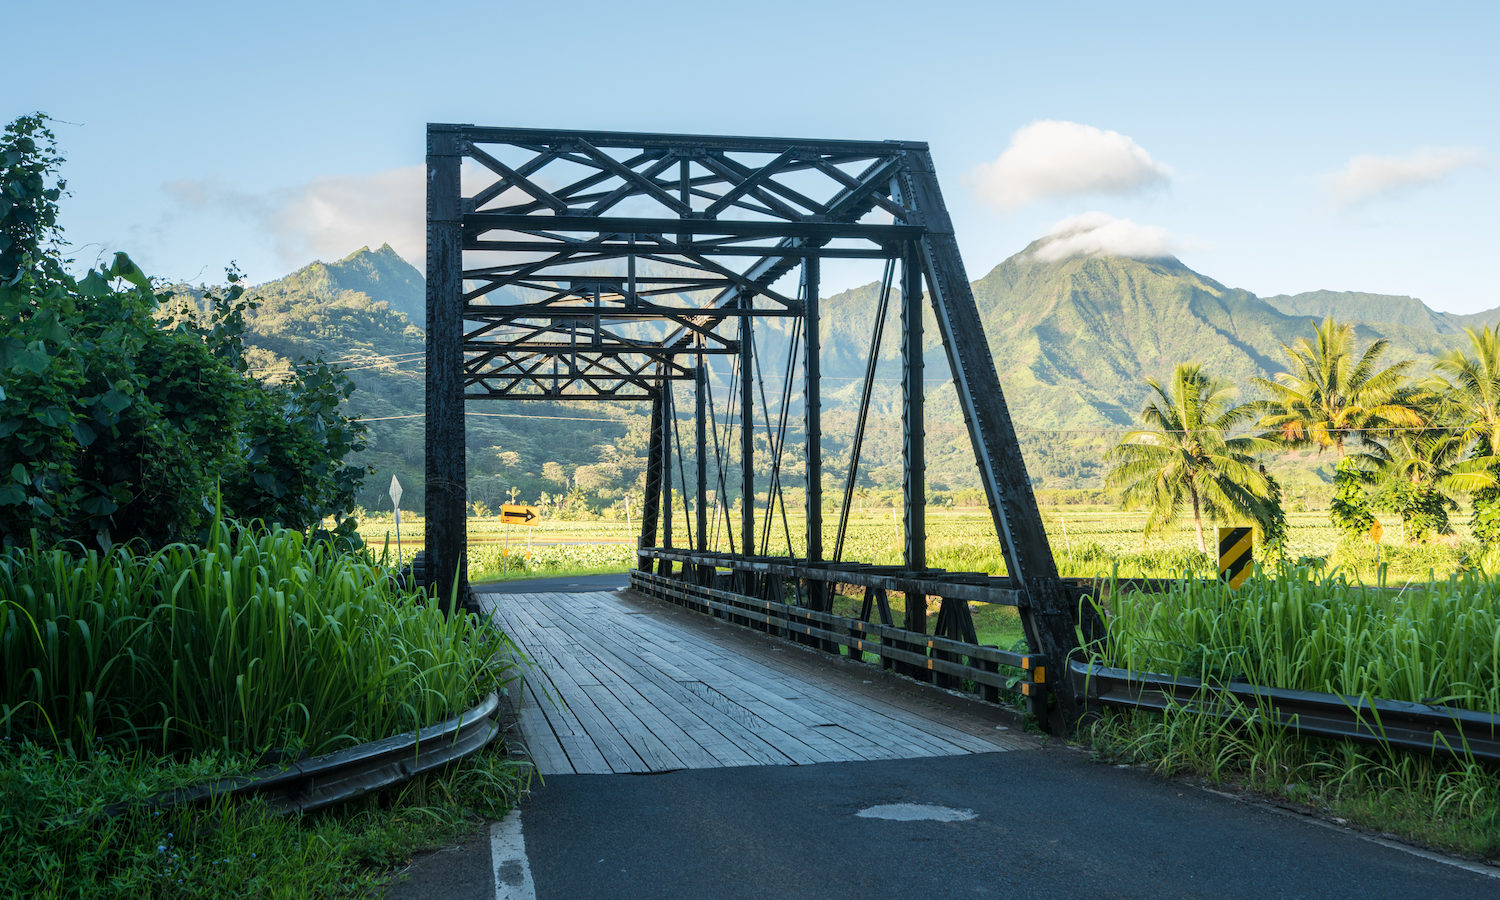 Hanalei Bridge, GyPSy Guide Narrated Driving Tour App for Kauai